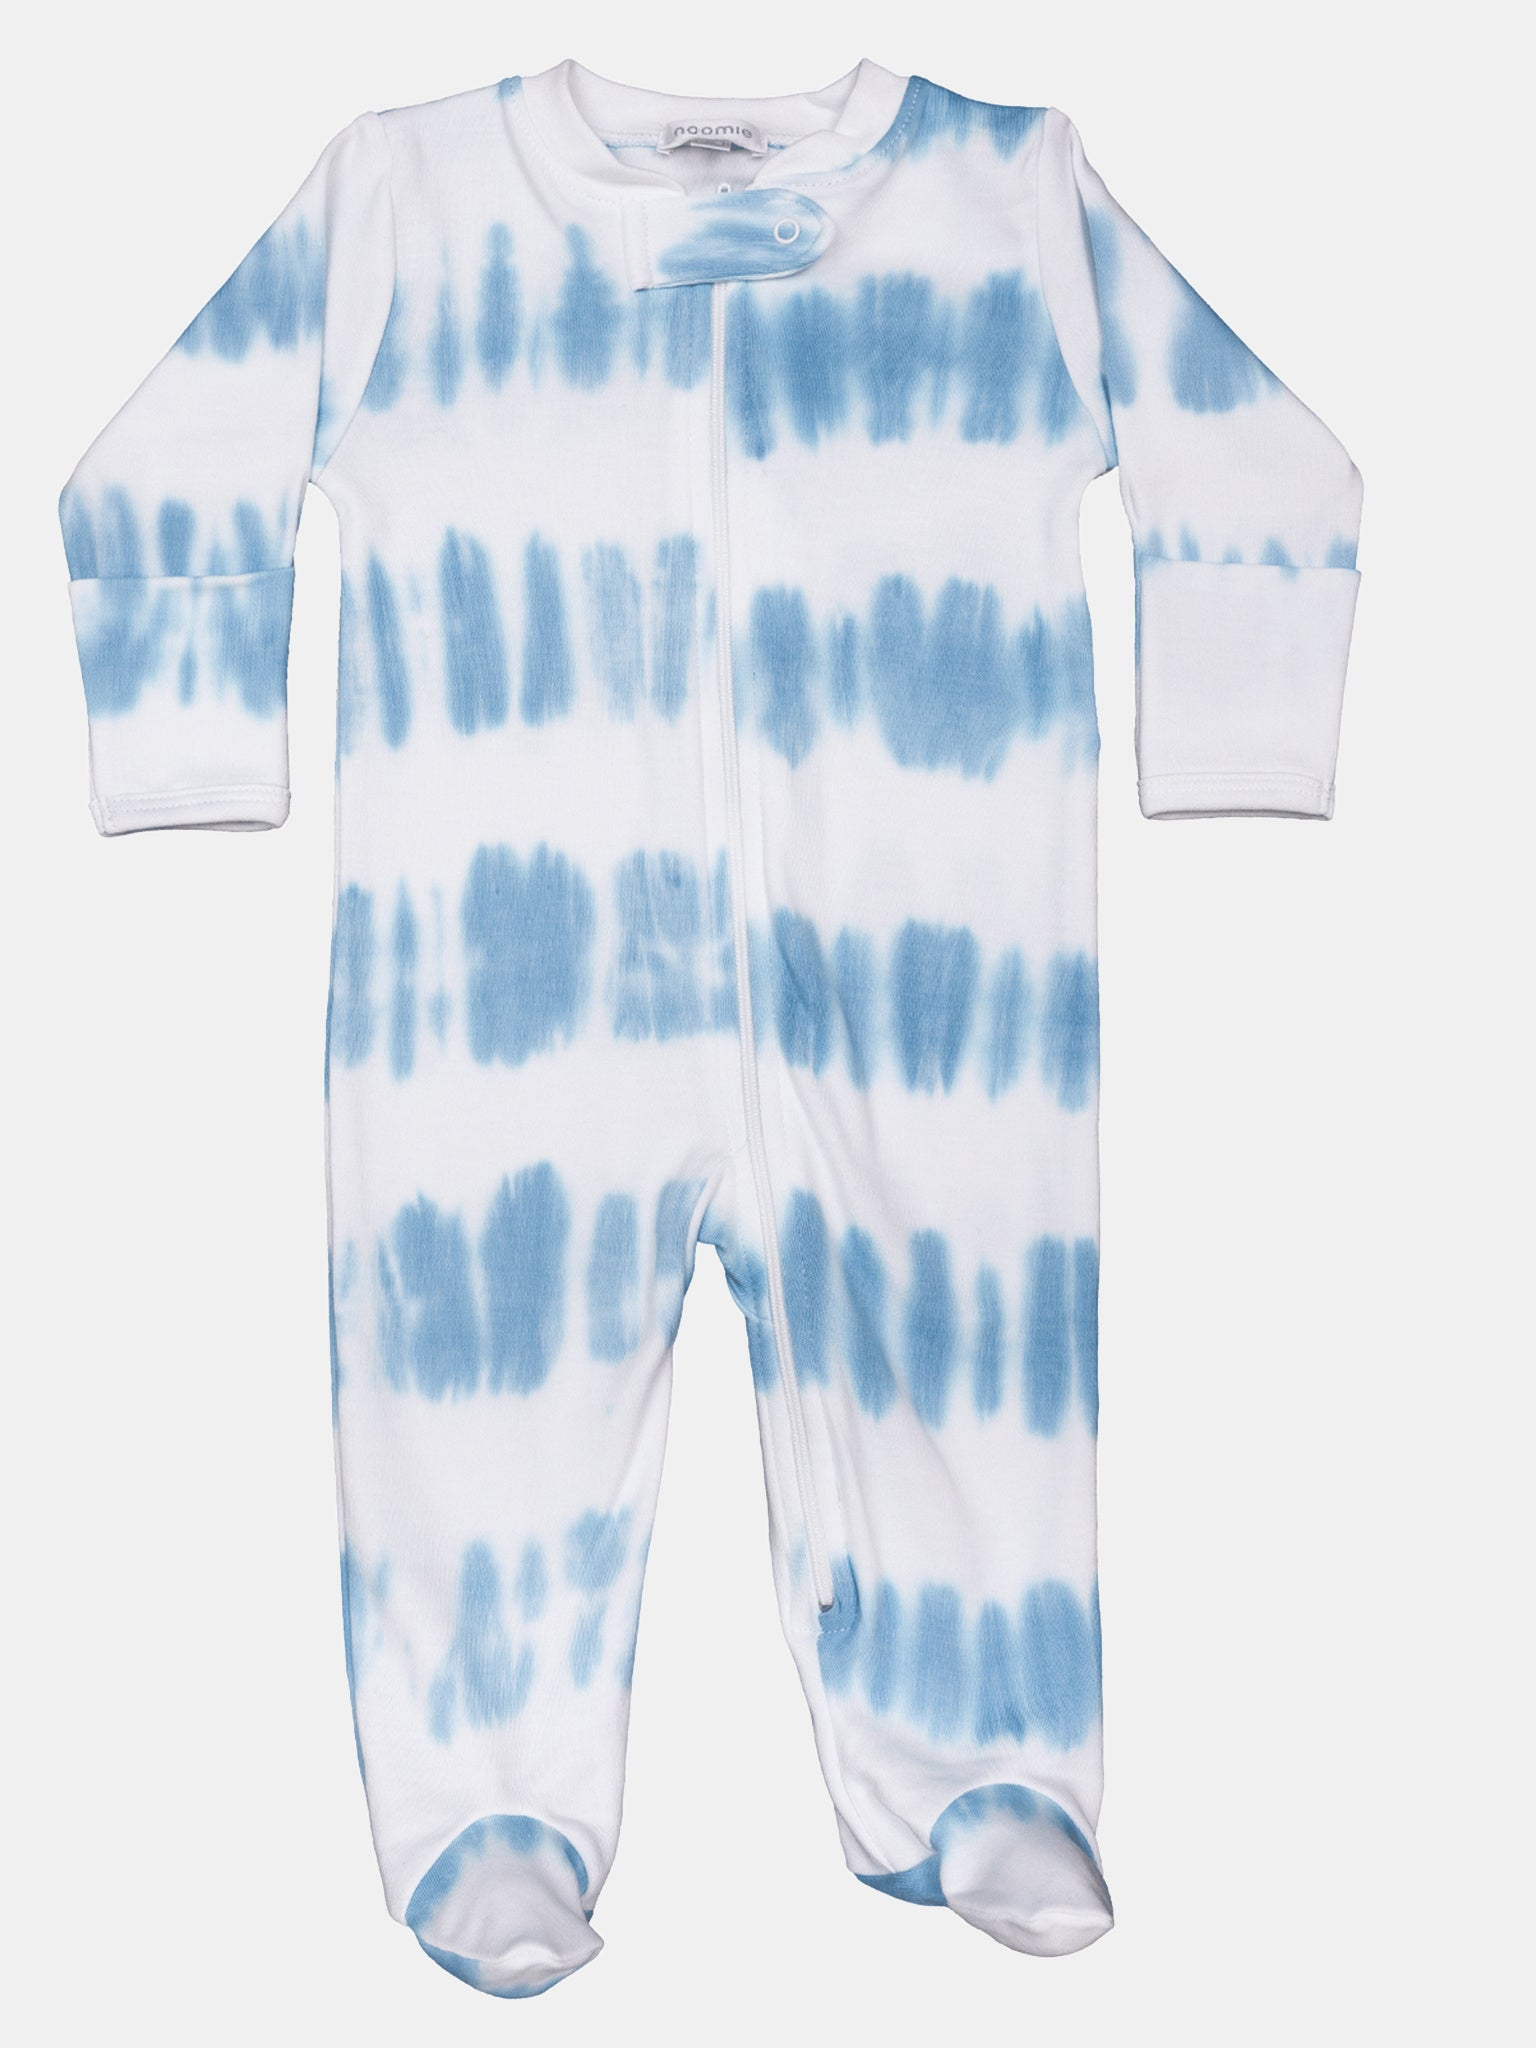 Baby Noomie Little Boys' Striped Tie Dye Zipper Footie